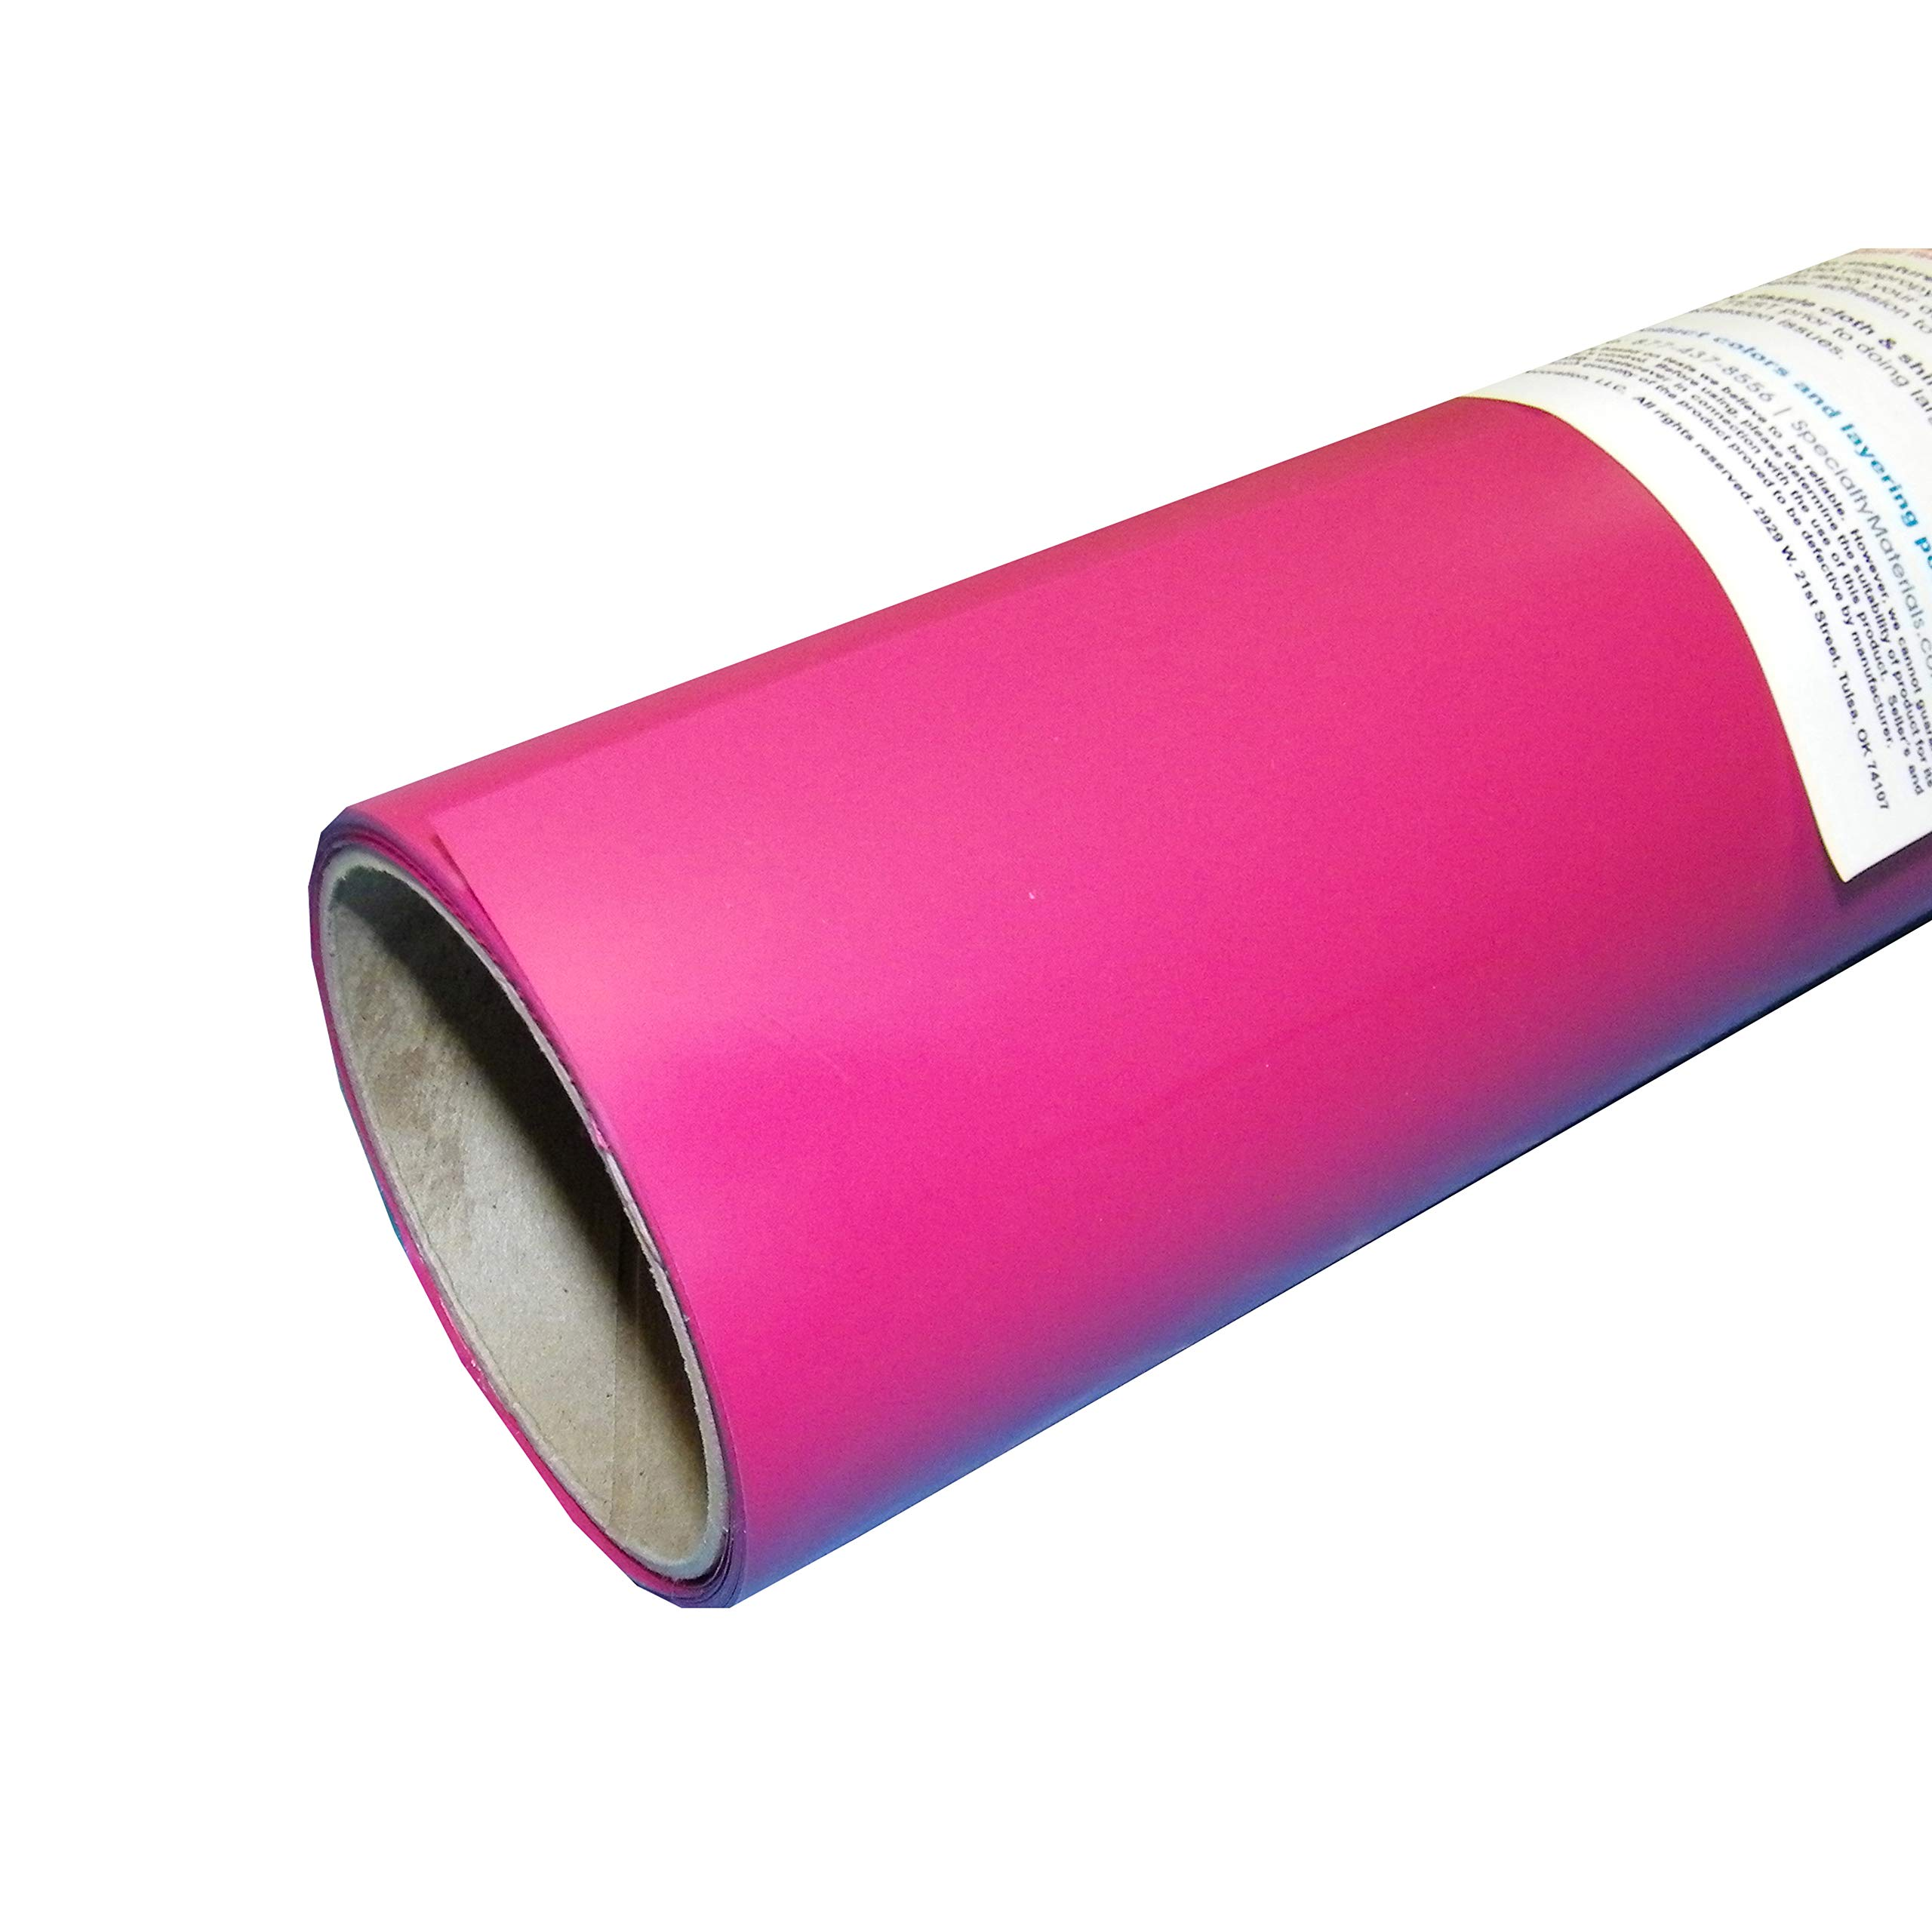 ThermoFlex Plus 15'' x 15' Roll Hot Pink Heat Transfer Vinyl by Coaches World by ThermoFlex Plus